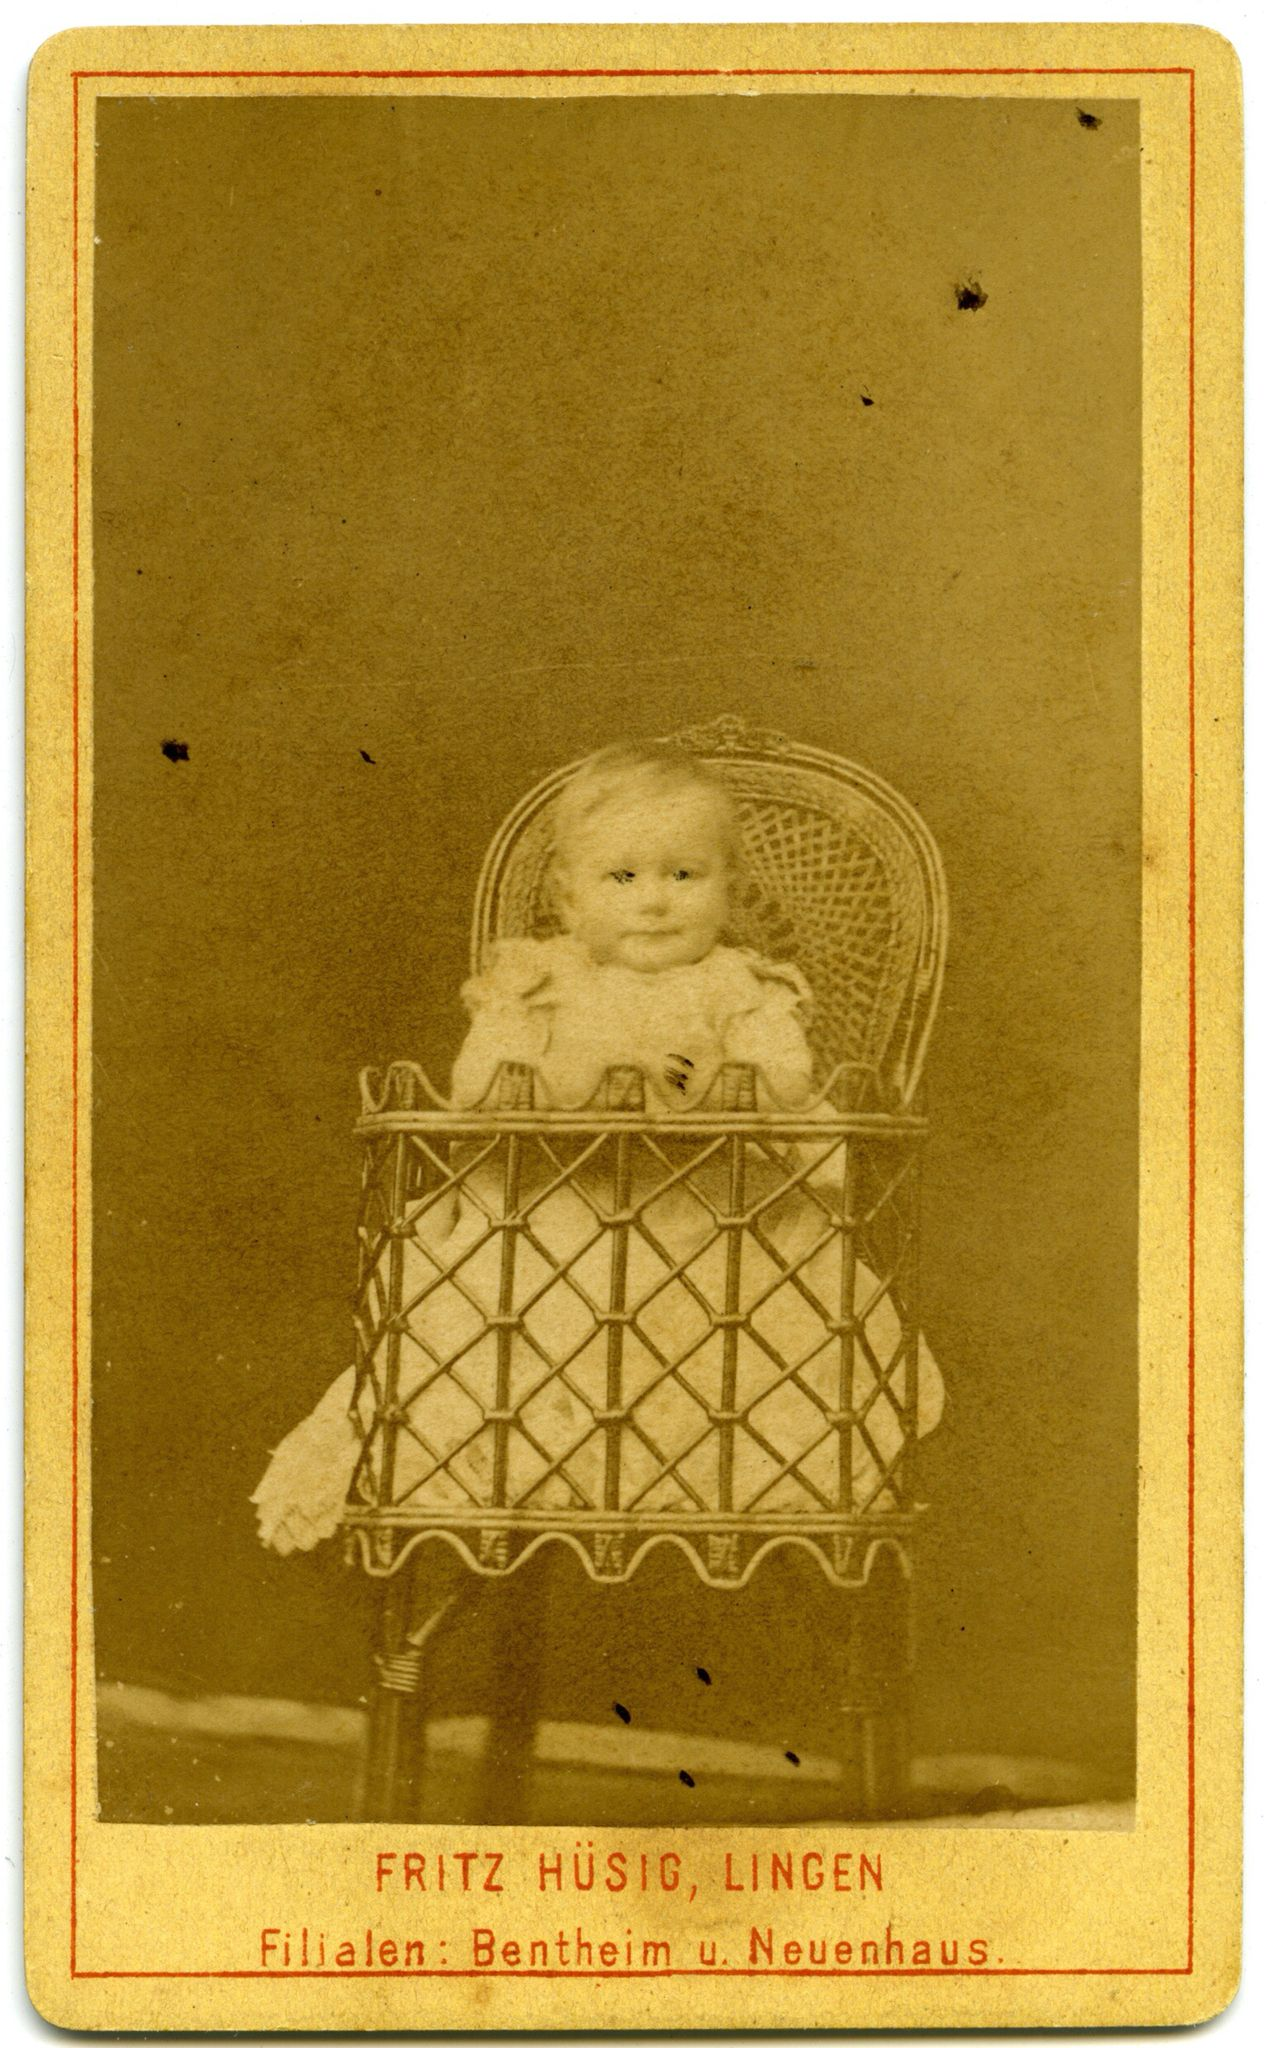 The Carte De Visite Was A Photograph Mounted To Card Stock They Were Invented